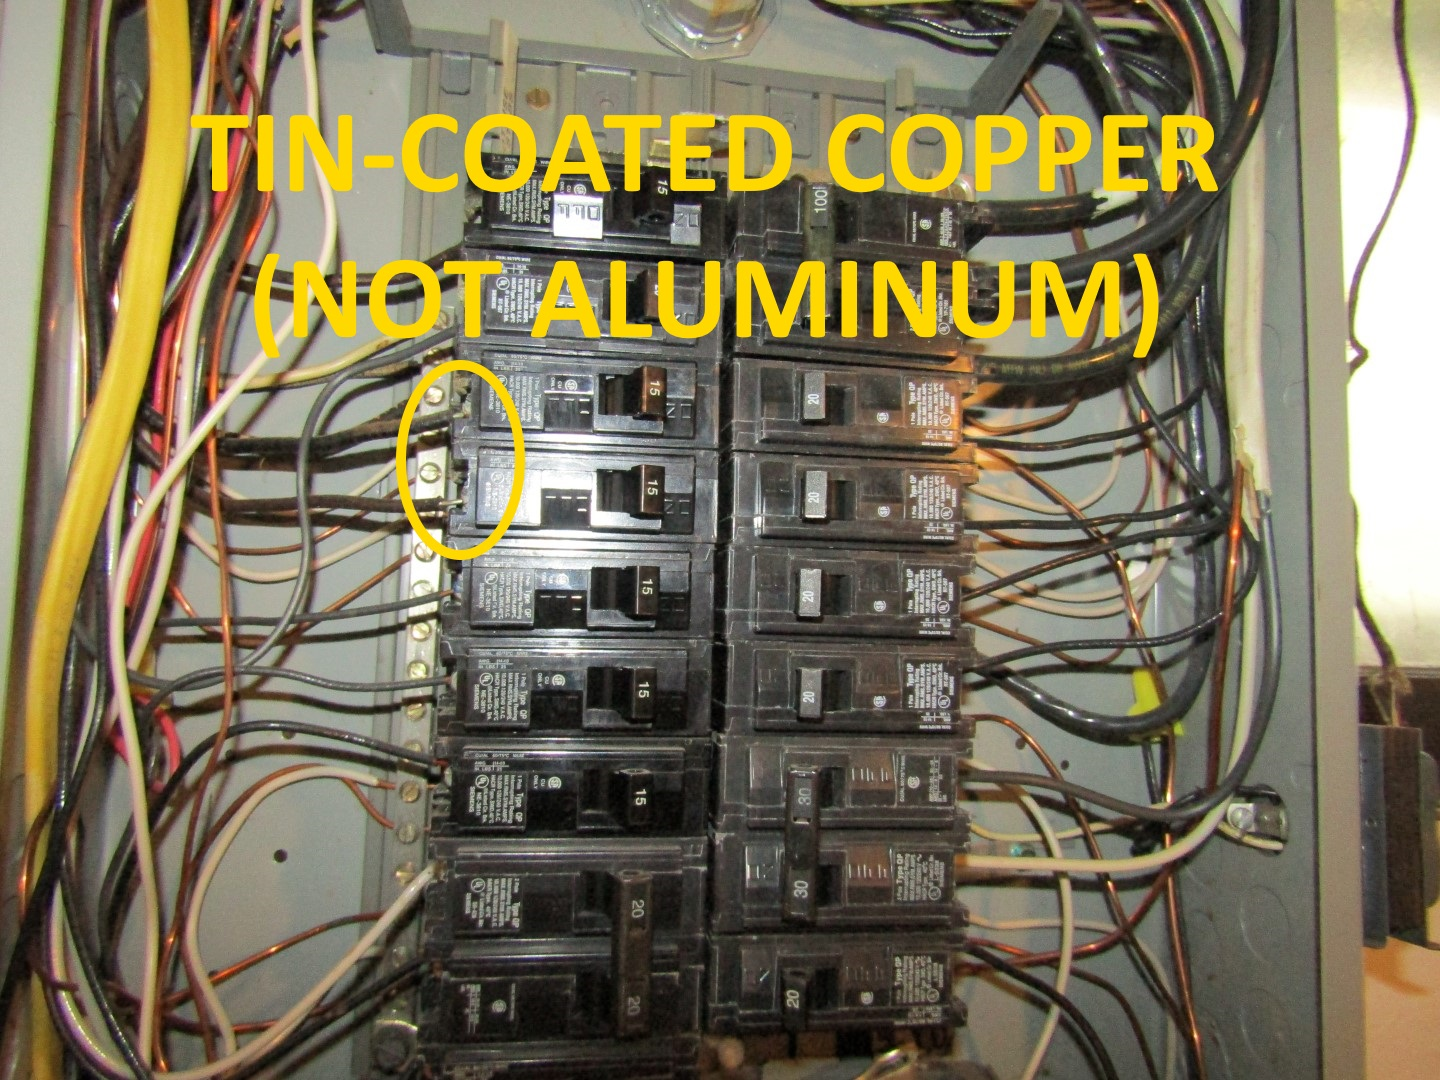 Fabulous Hazards With Aluminum Wiring Structure Tech Home Inspections Wiring Digital Resources Funiwoestevosnl